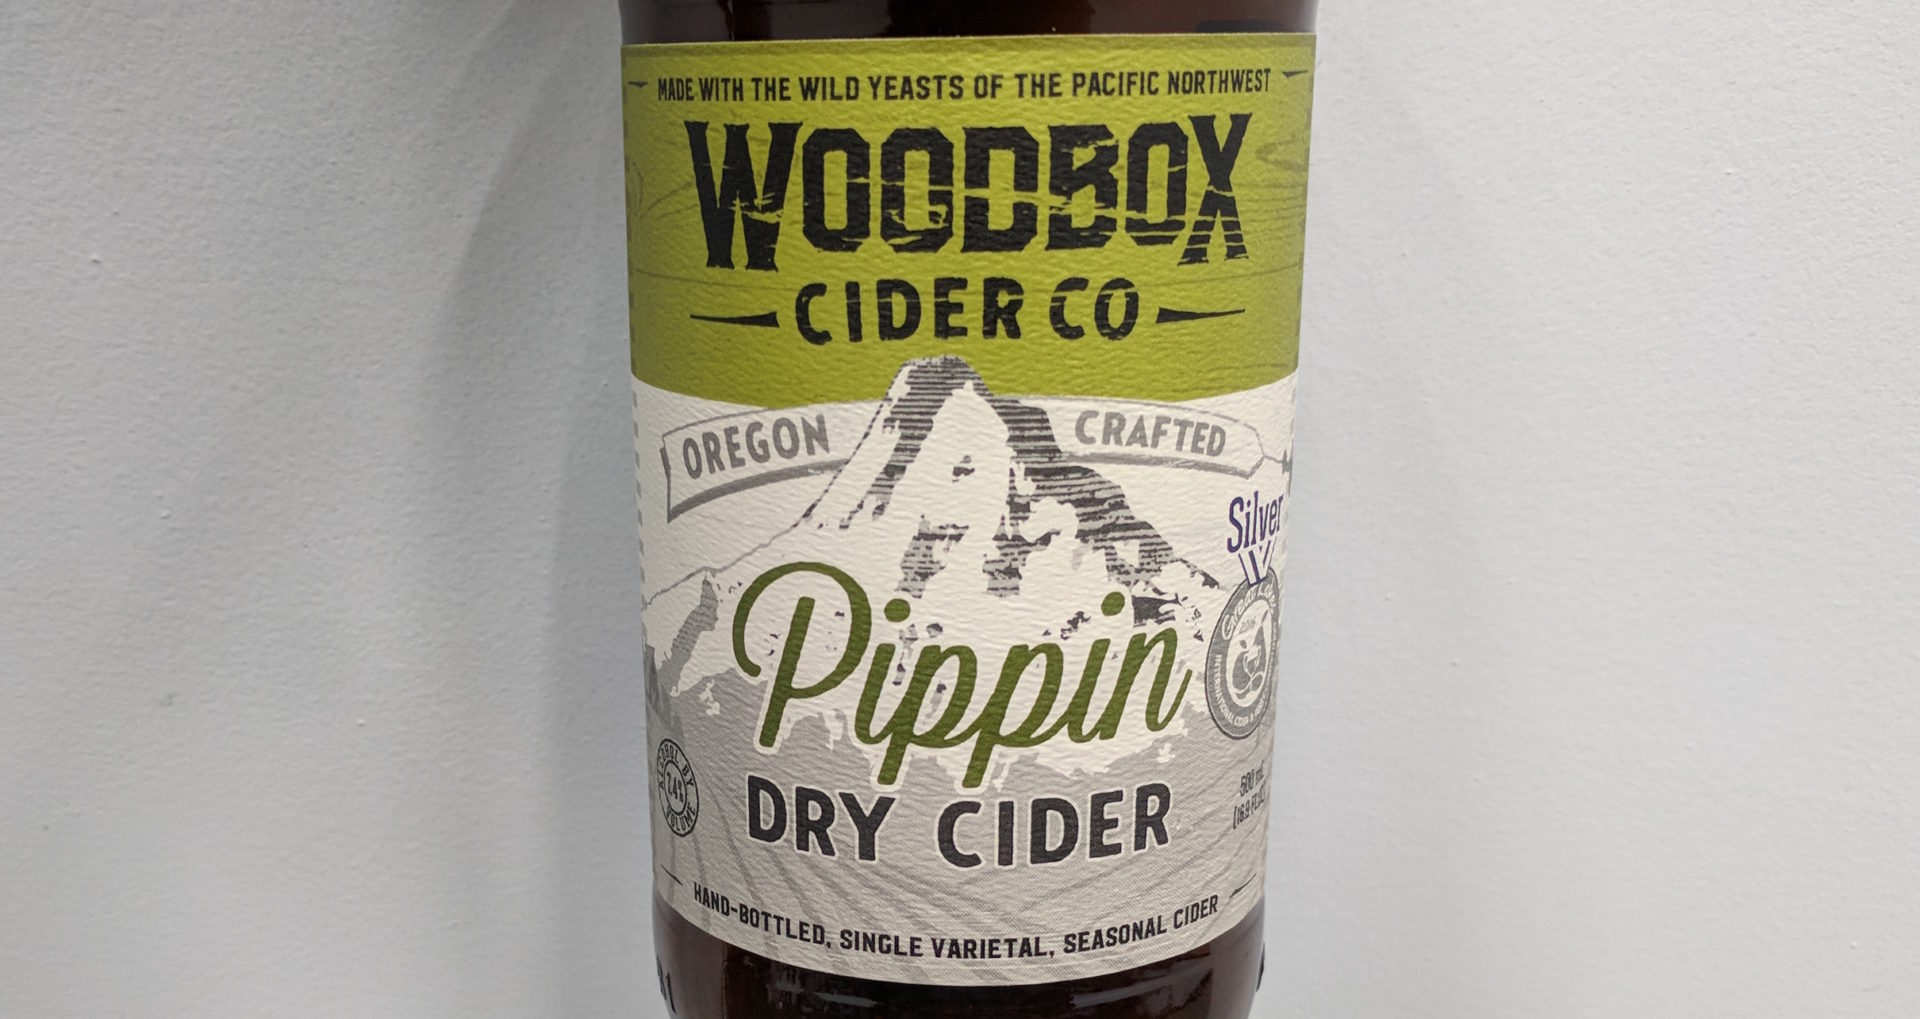 Woodbox Cider Co Pippin Dry Cider